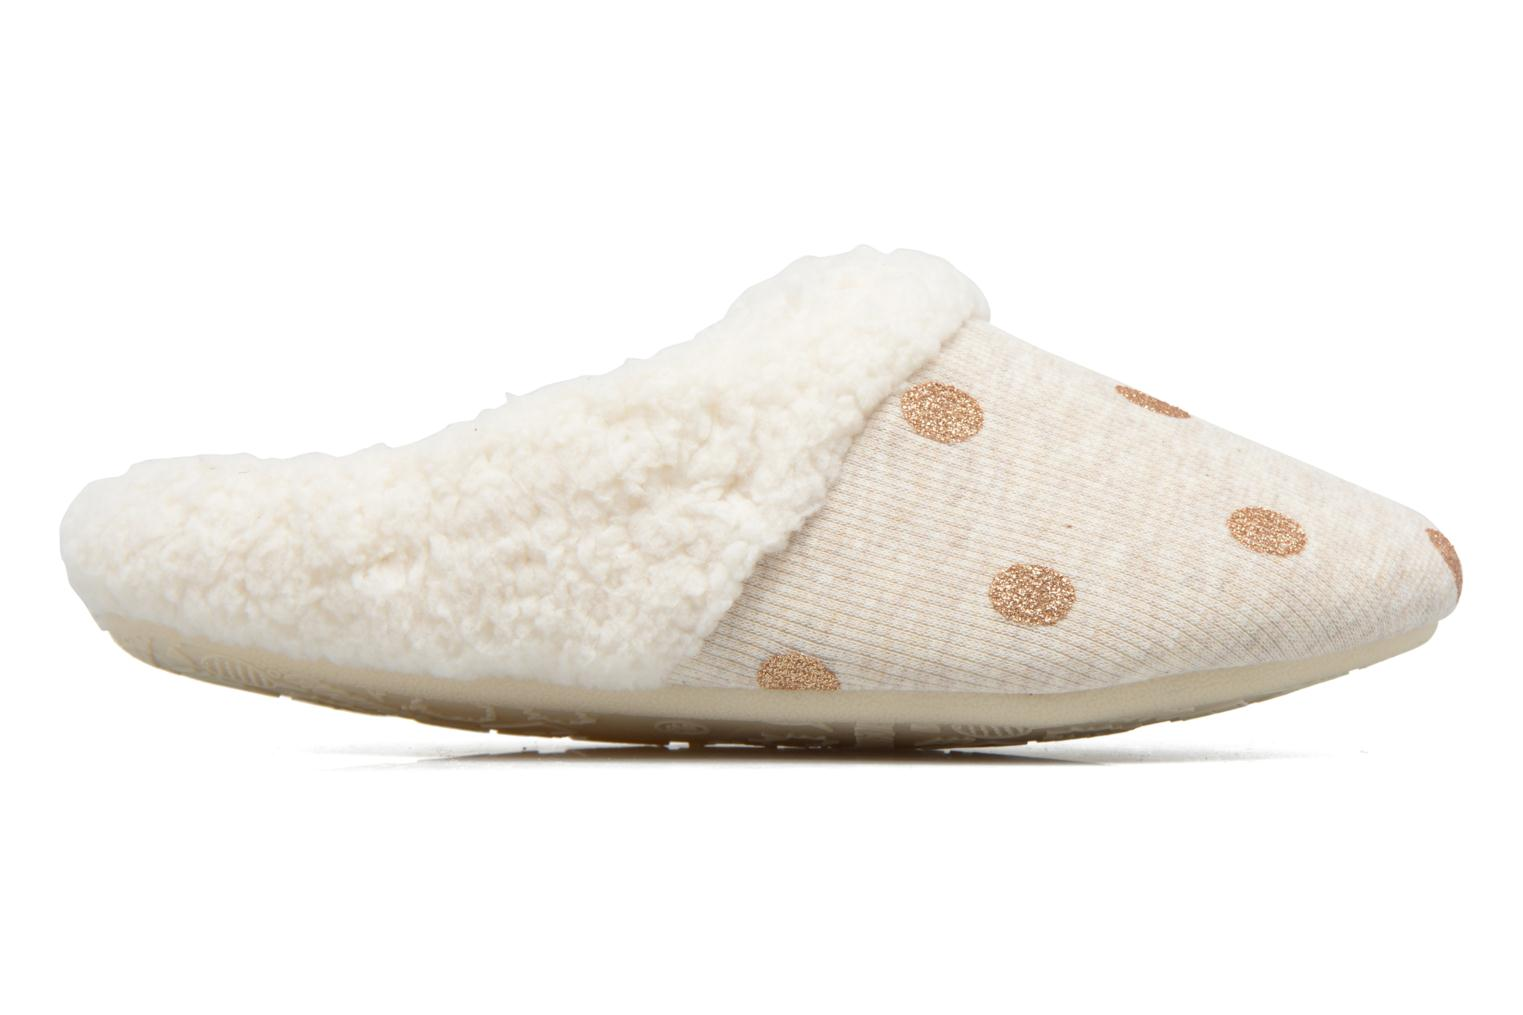 Chaussons Gioseppo Bled Beige vue derrière